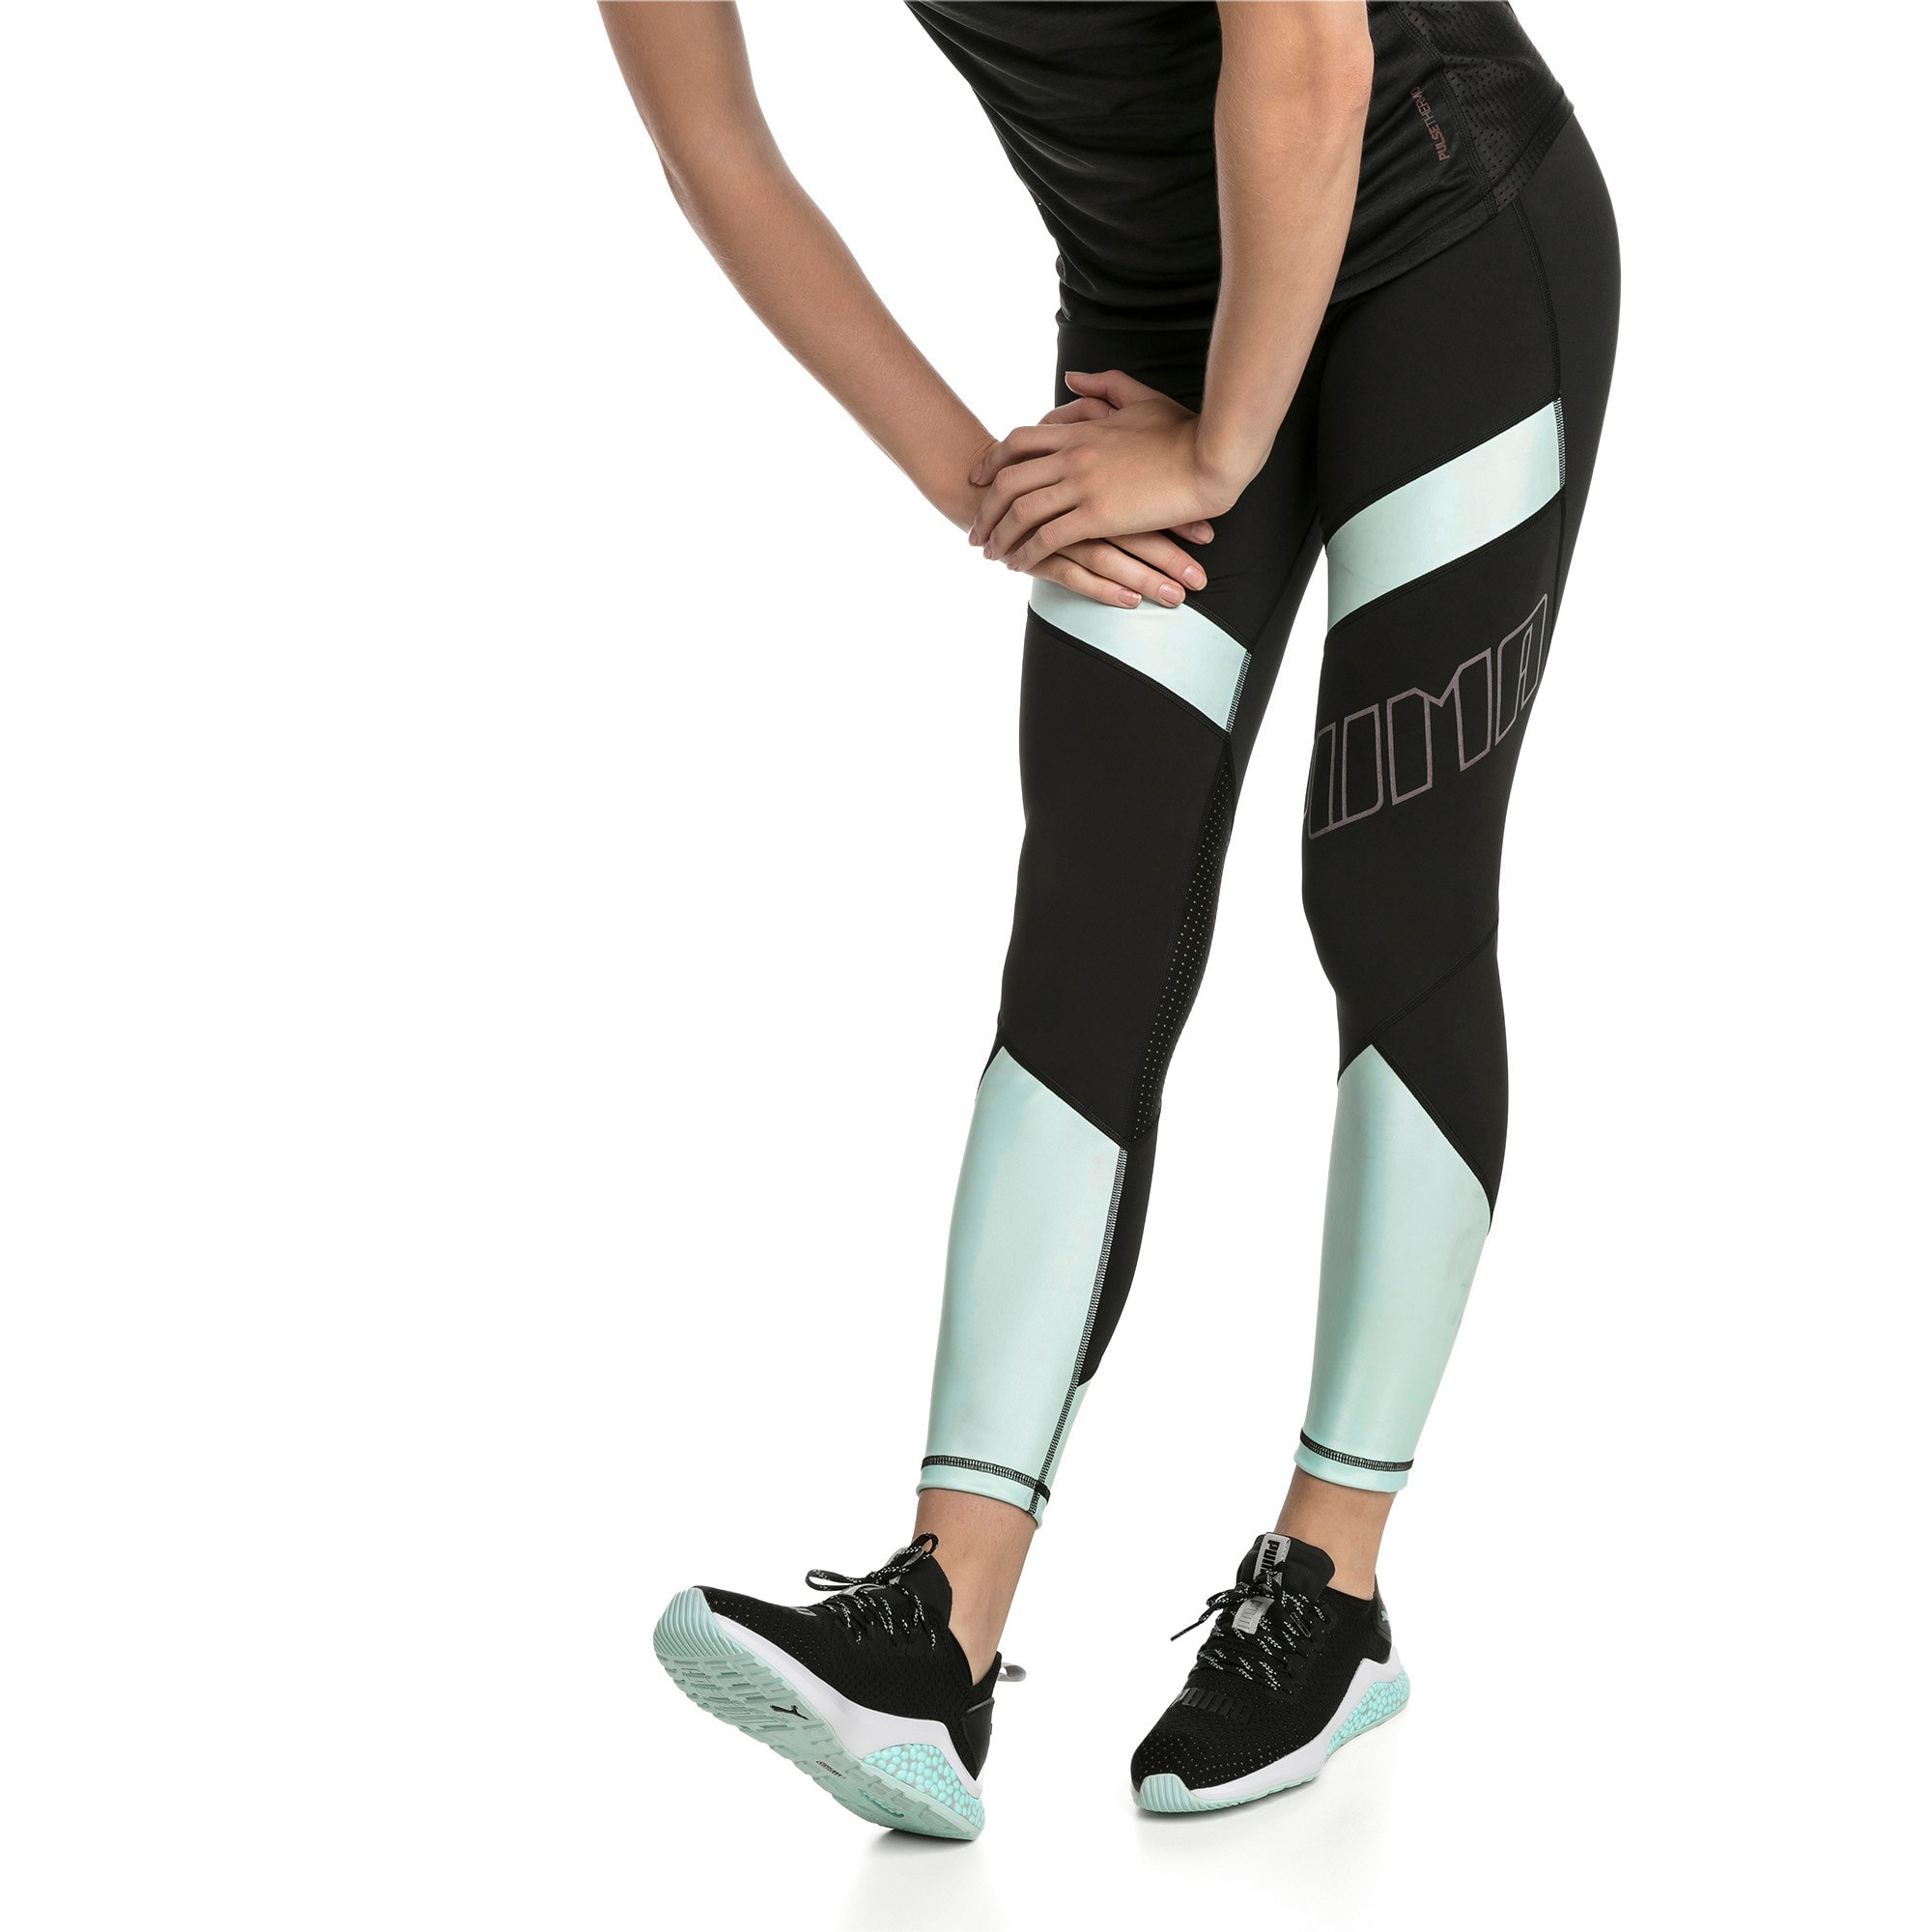 Thumbnail 1 of Elite Women's Running Leggings, Puma Black-Fair Aqua, medium-SEA